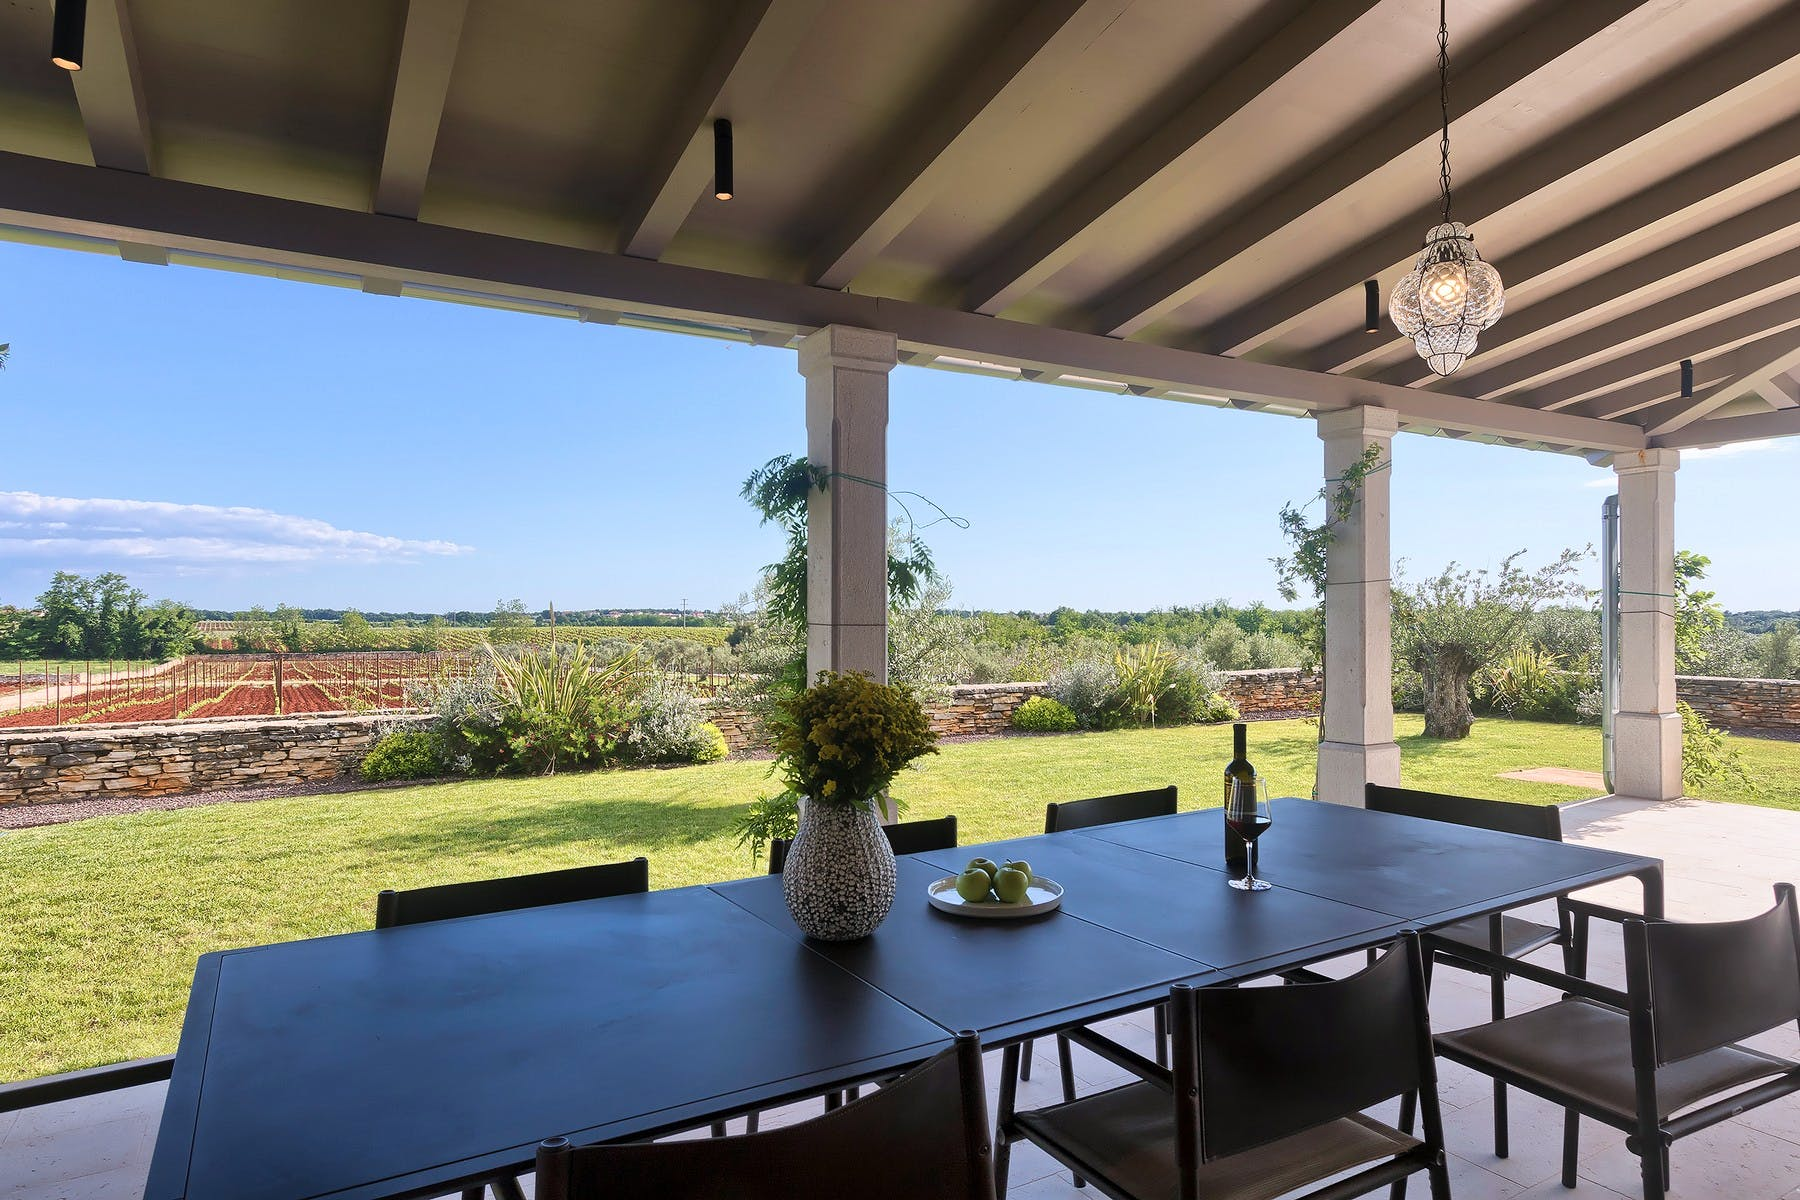 Outdoor dining table with scenic nature view